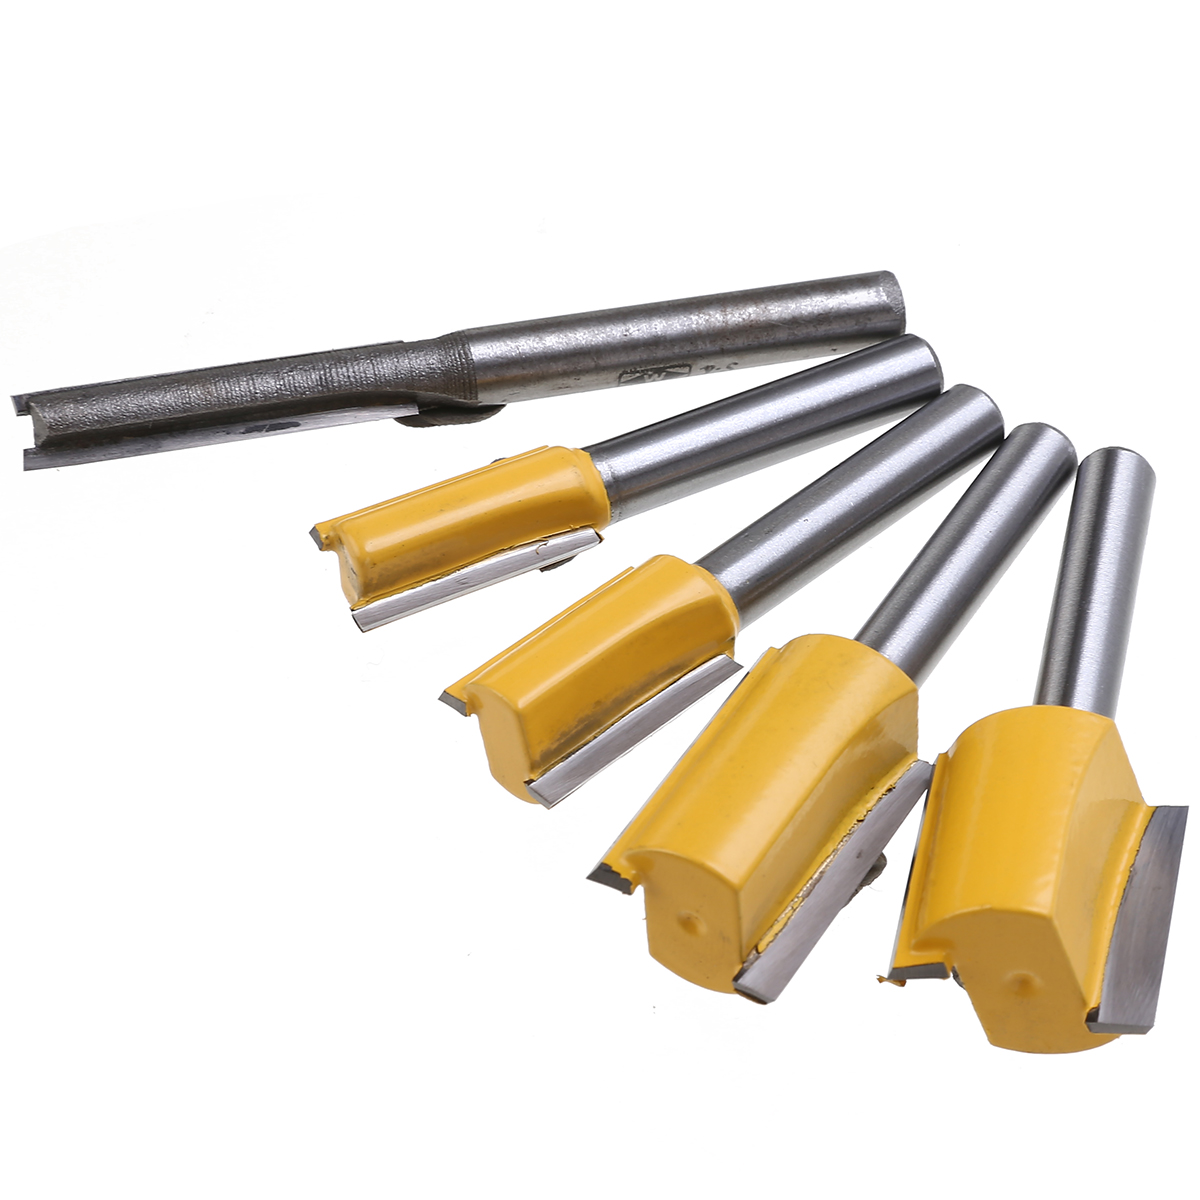 """5pcs Straight Router Bits Set Hard Alloy 1/4"""" Shank Trimming Cutter Woodworking Tools 1/4"""" 3/8"""" 1/2"""" 5/8"""" 3/4"""" Cutting Diameter"""